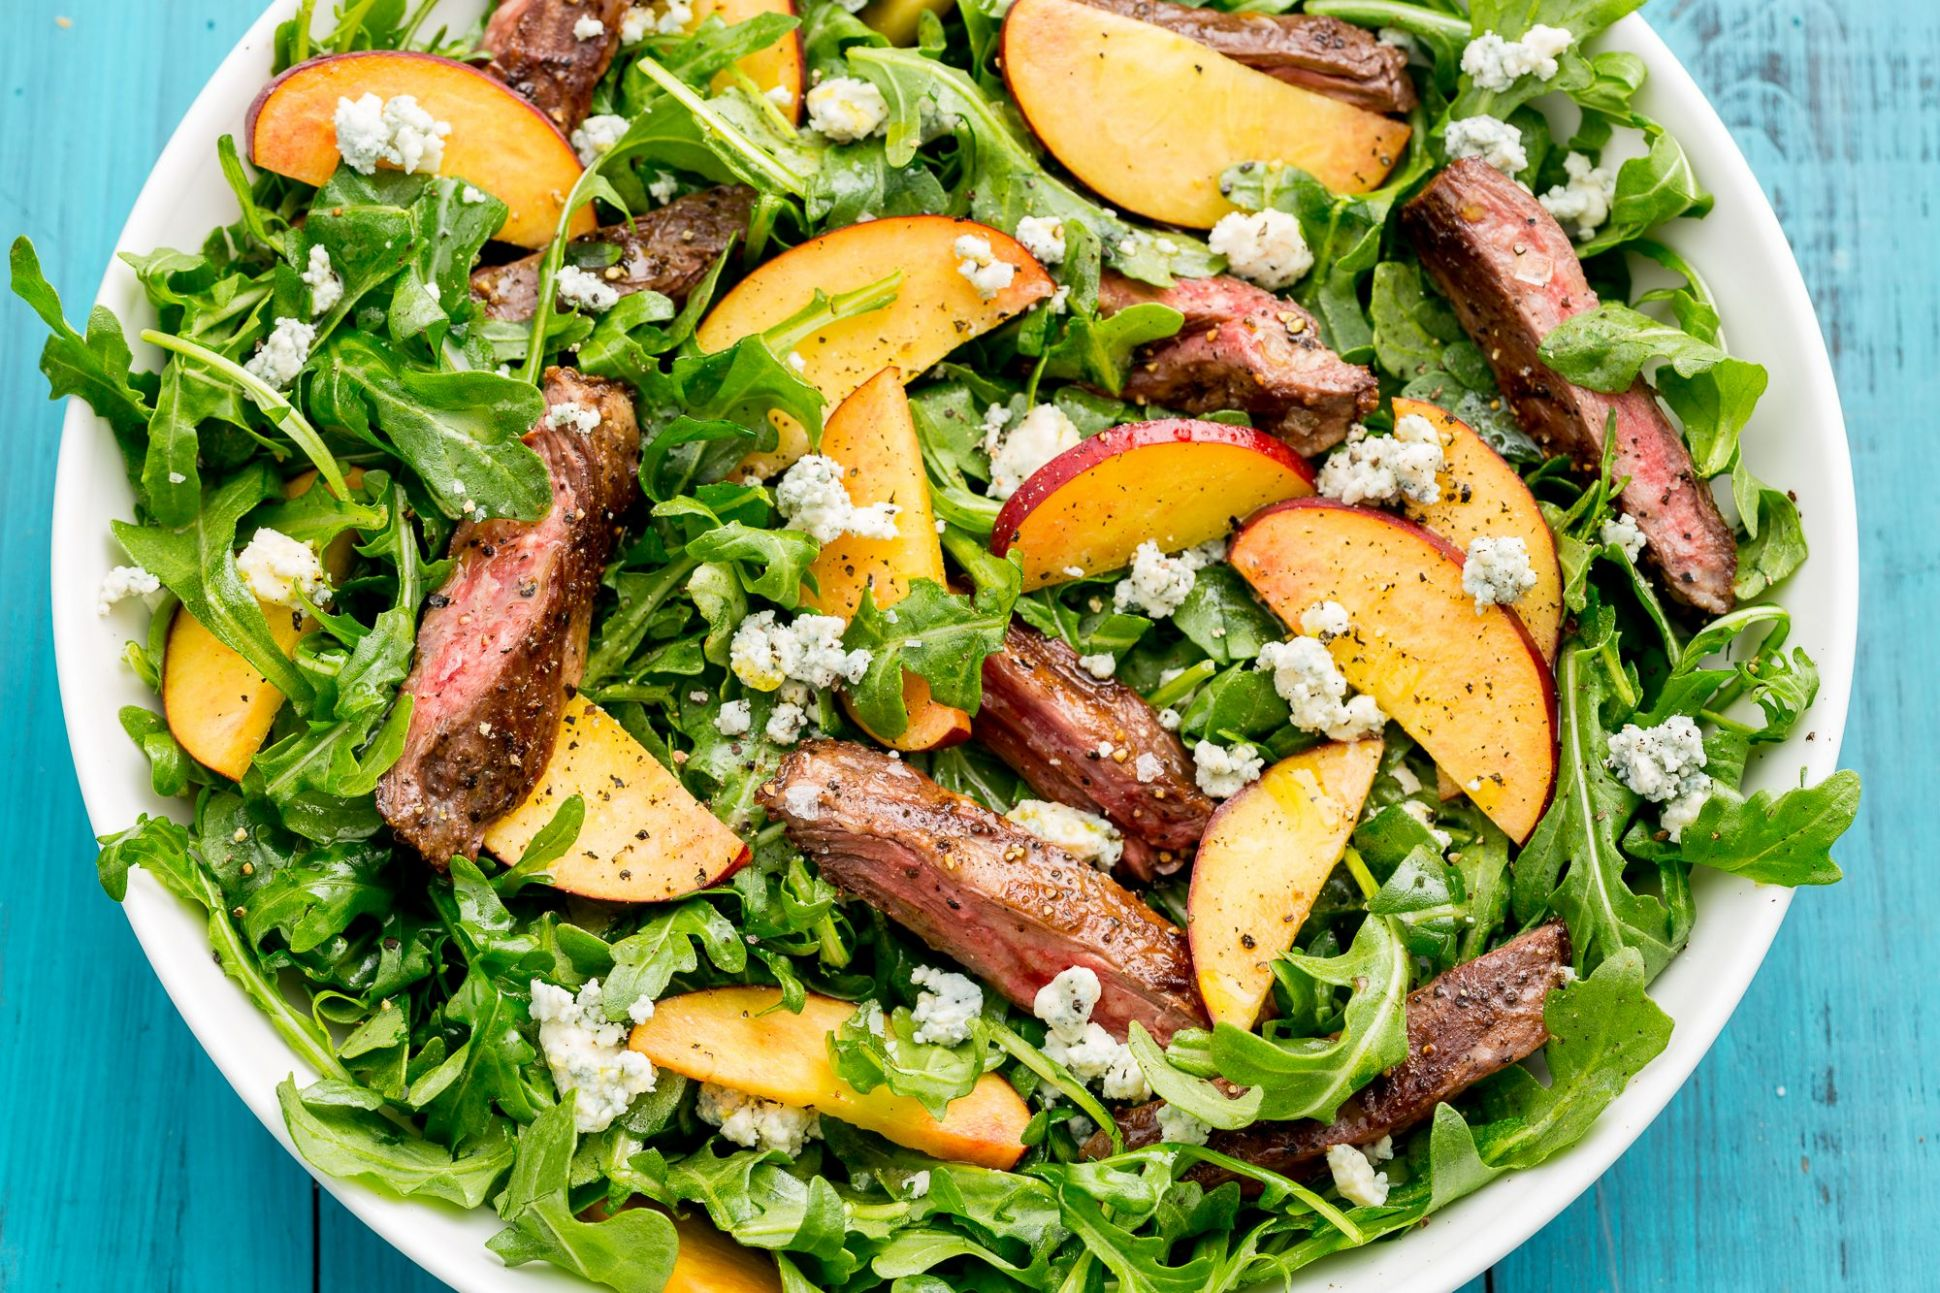 Balsamic Grilled Steak Salad with Peaches - Summer Recipes Delish